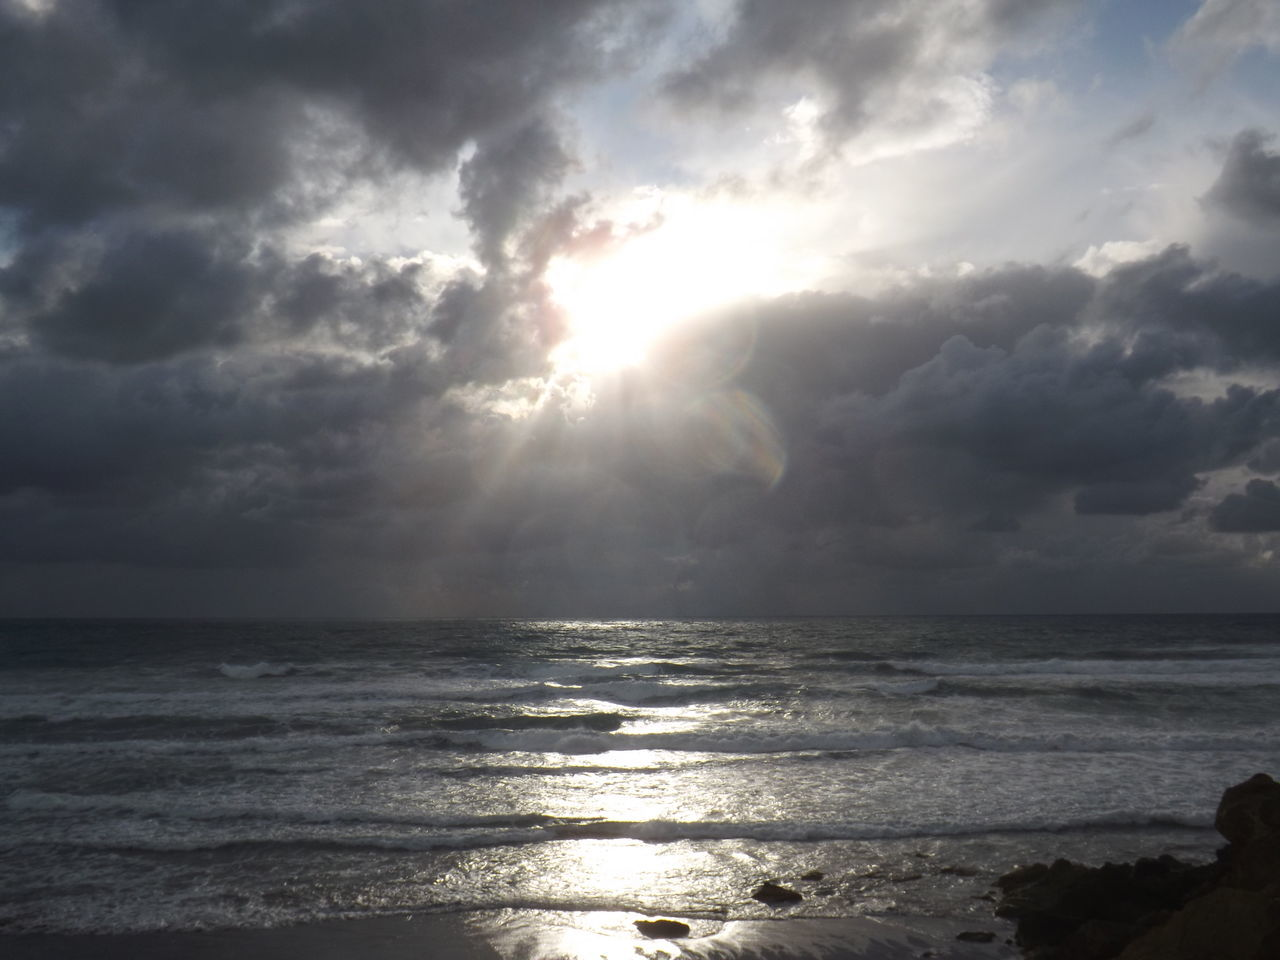 sea, sunbeam, horizon over water, beauty in nature, scenics, sunlight, nature, cloud - sky, sky, water, tranquility, tranquil scene, lens flare, sun, idyllic, outdoors, reflection, no people, wave, day, sunset, beach, storm cloud